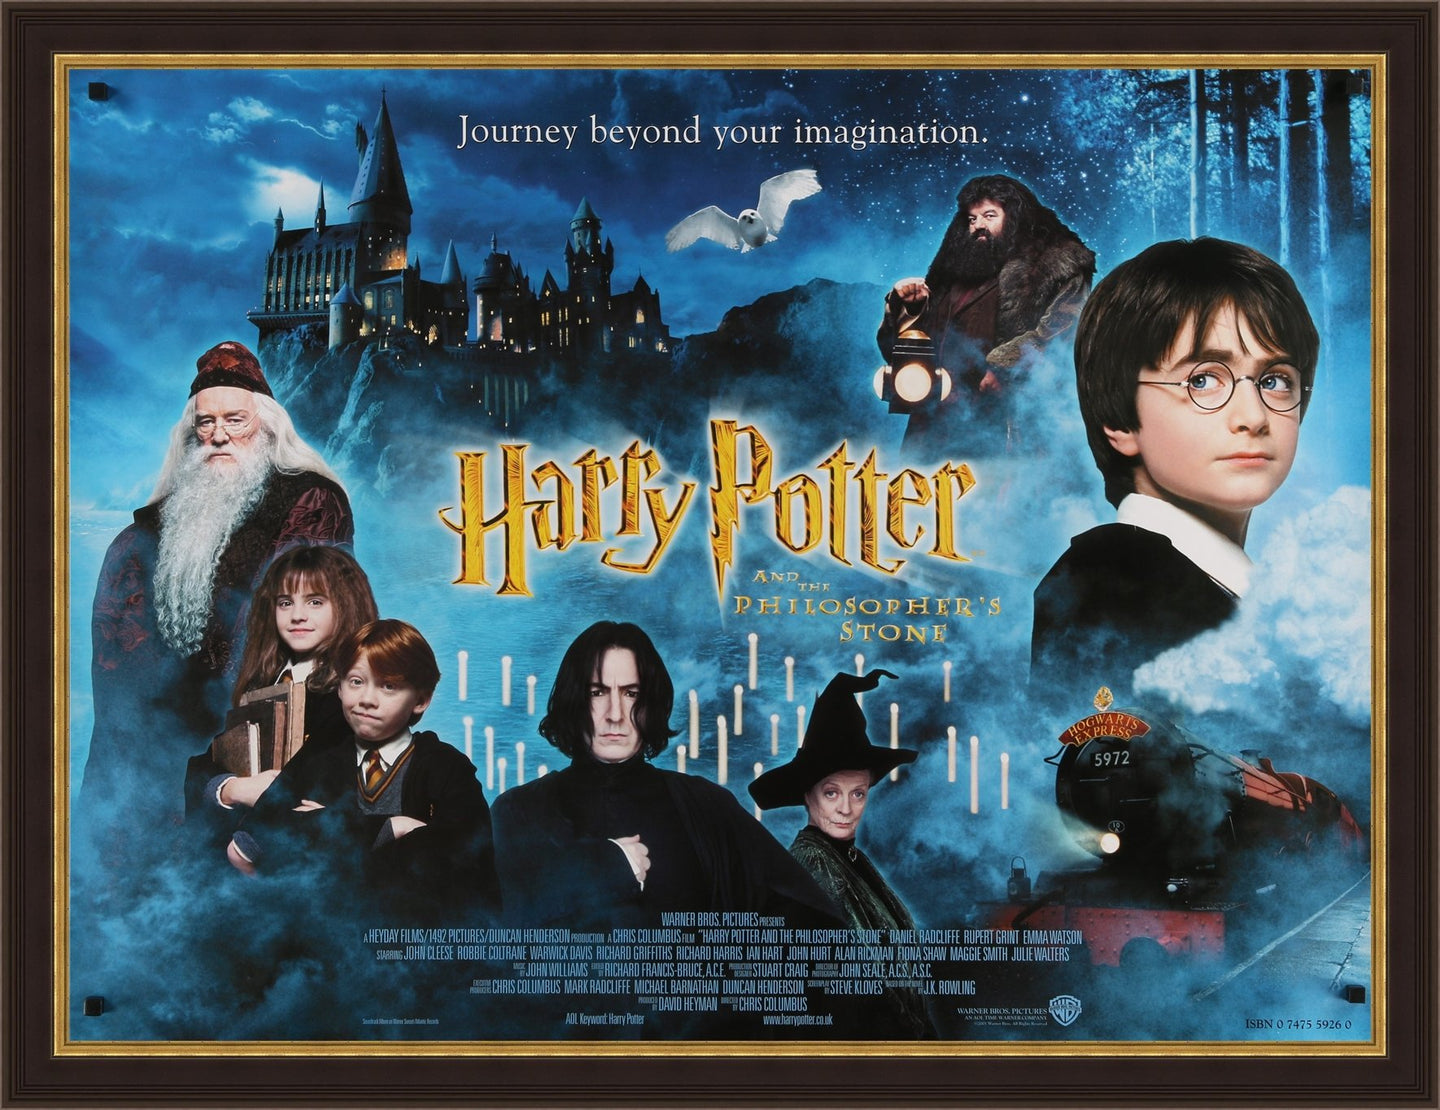 An original movie poster for the film Harry Potter and the Philosopher's Stone